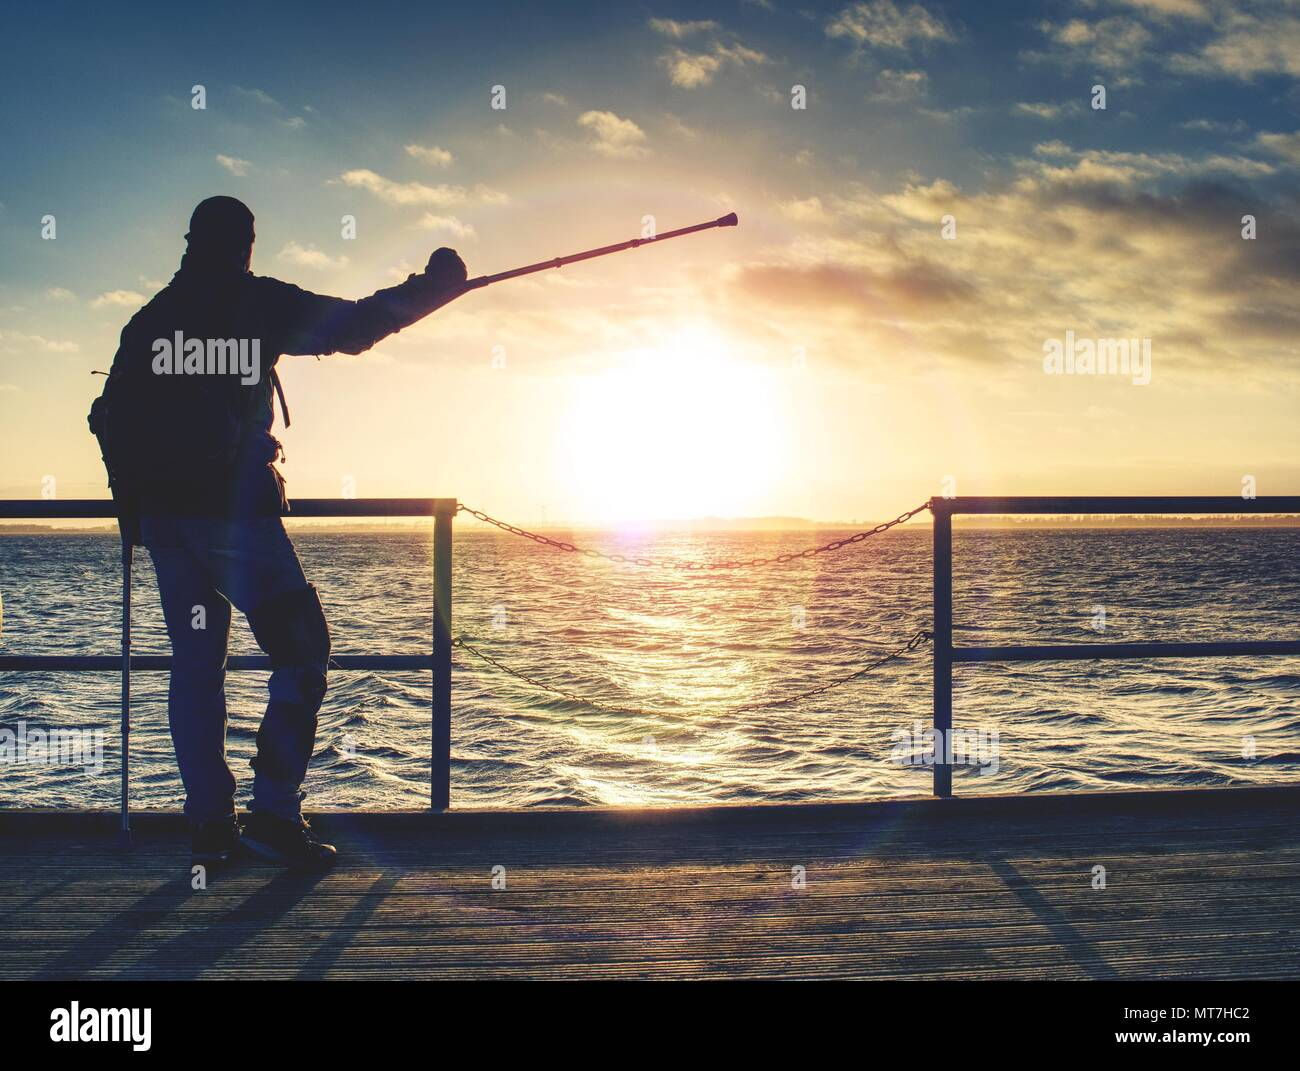 Disabled hurt hiker man is celebrate alone attachment of his target. Tourist stand or walk along on sea bridge within warm sunset, horizon where sky t - Stock Image